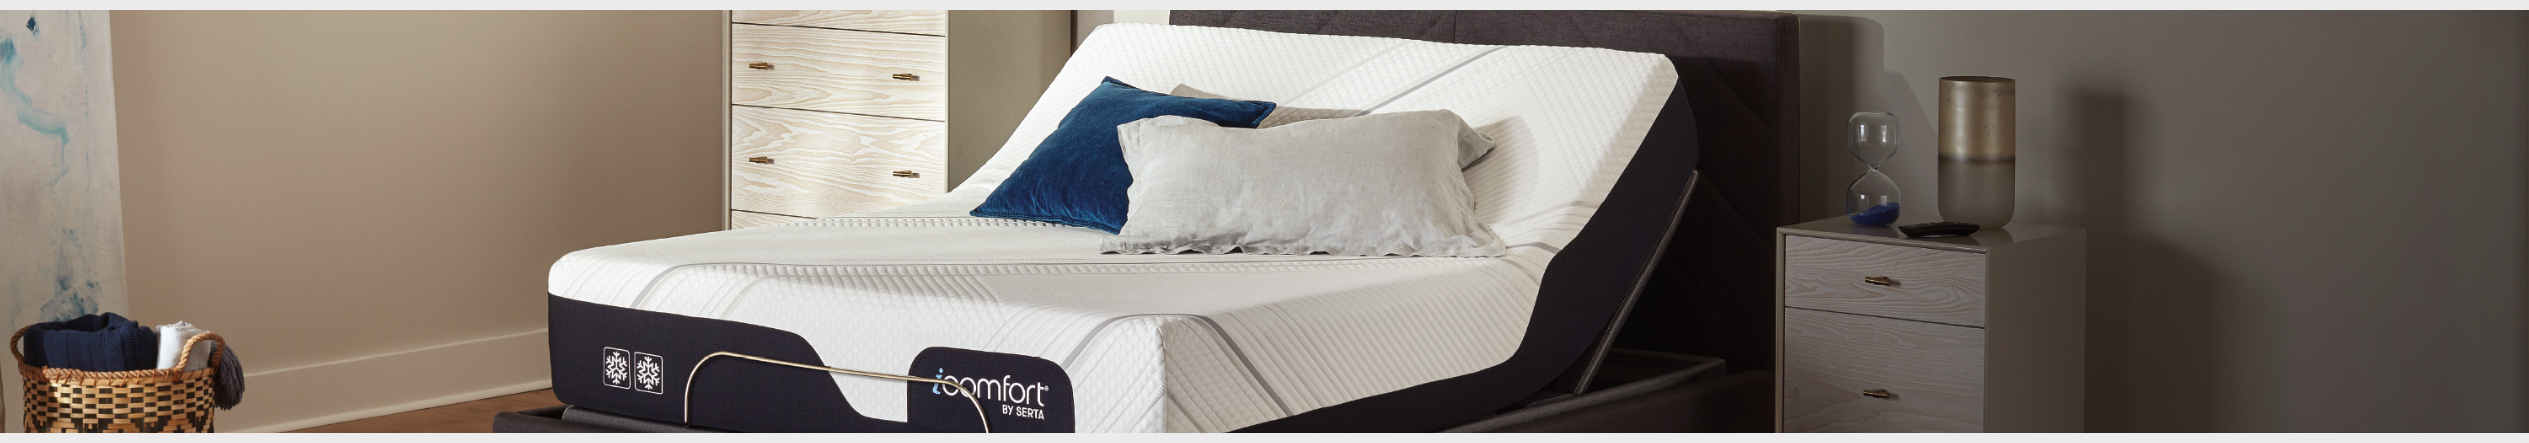 Shop Serta Mattresses at Jordan's Furniture stores in MA, CT, ME, NH and RI